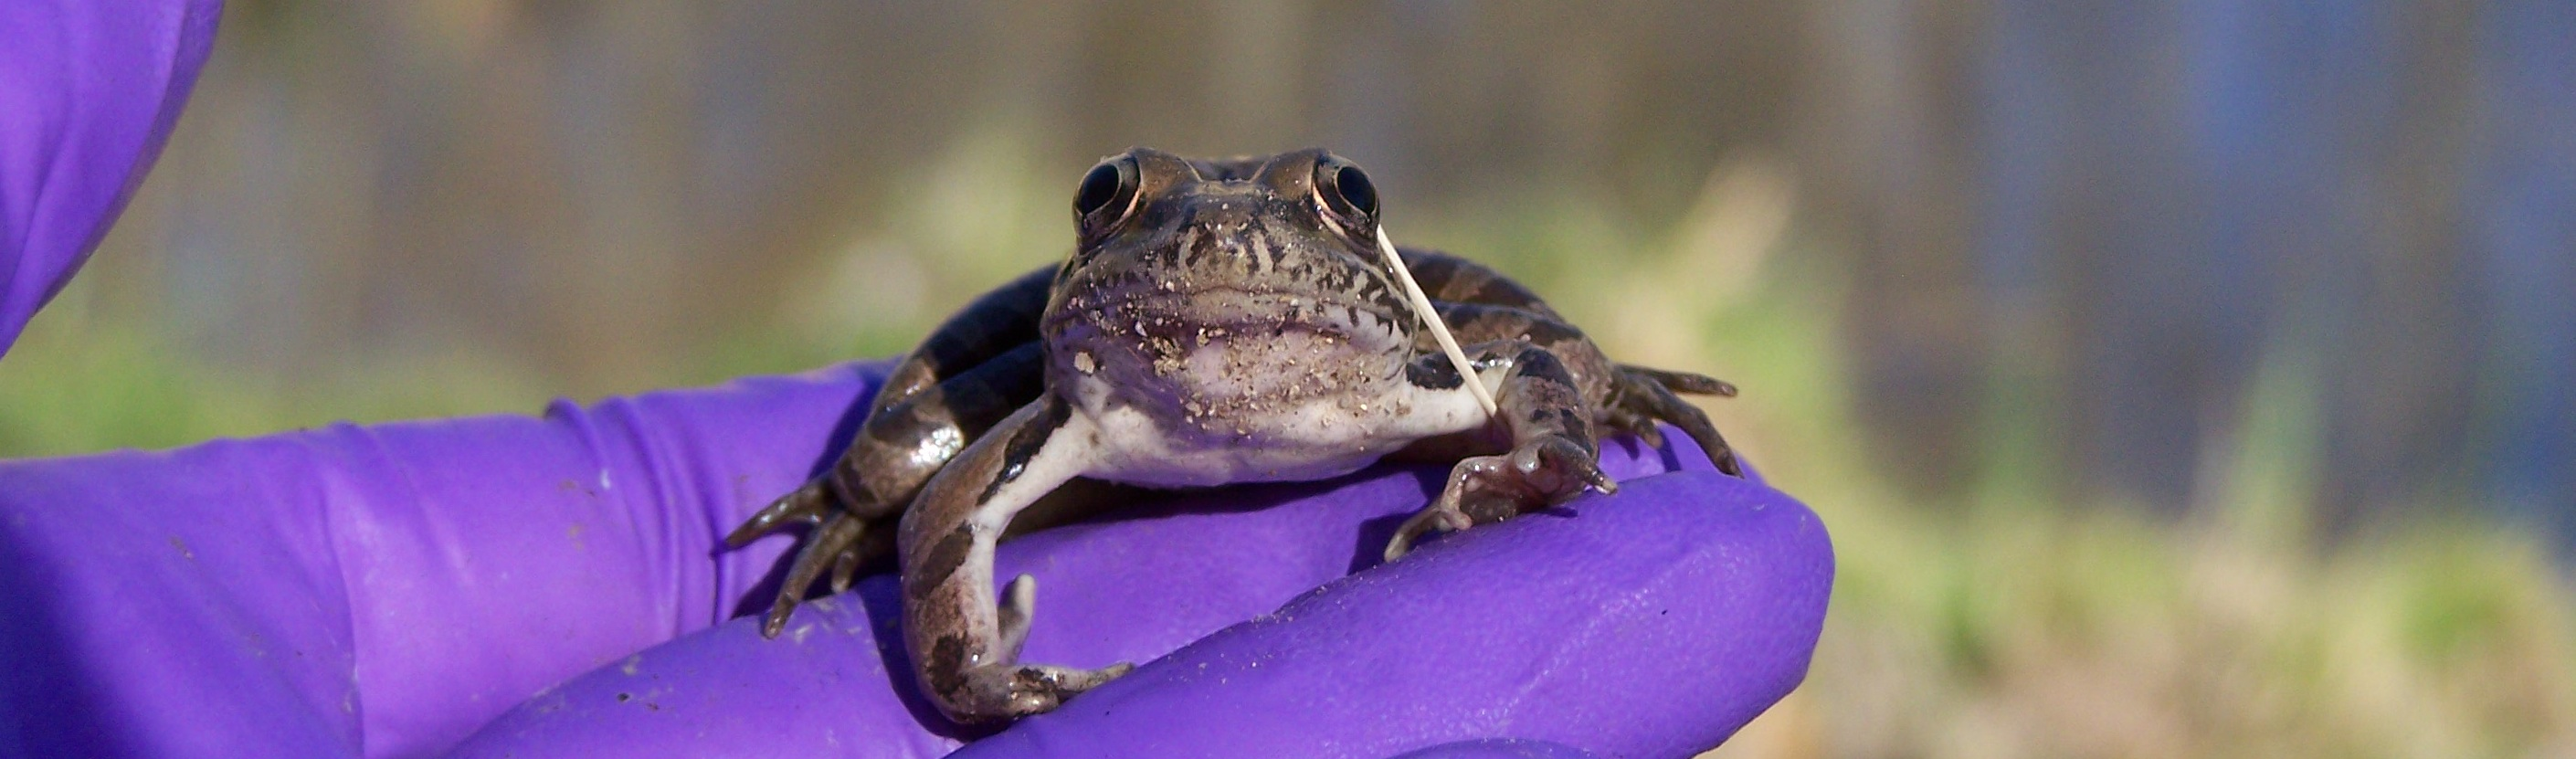 Cute_frog_in_hand